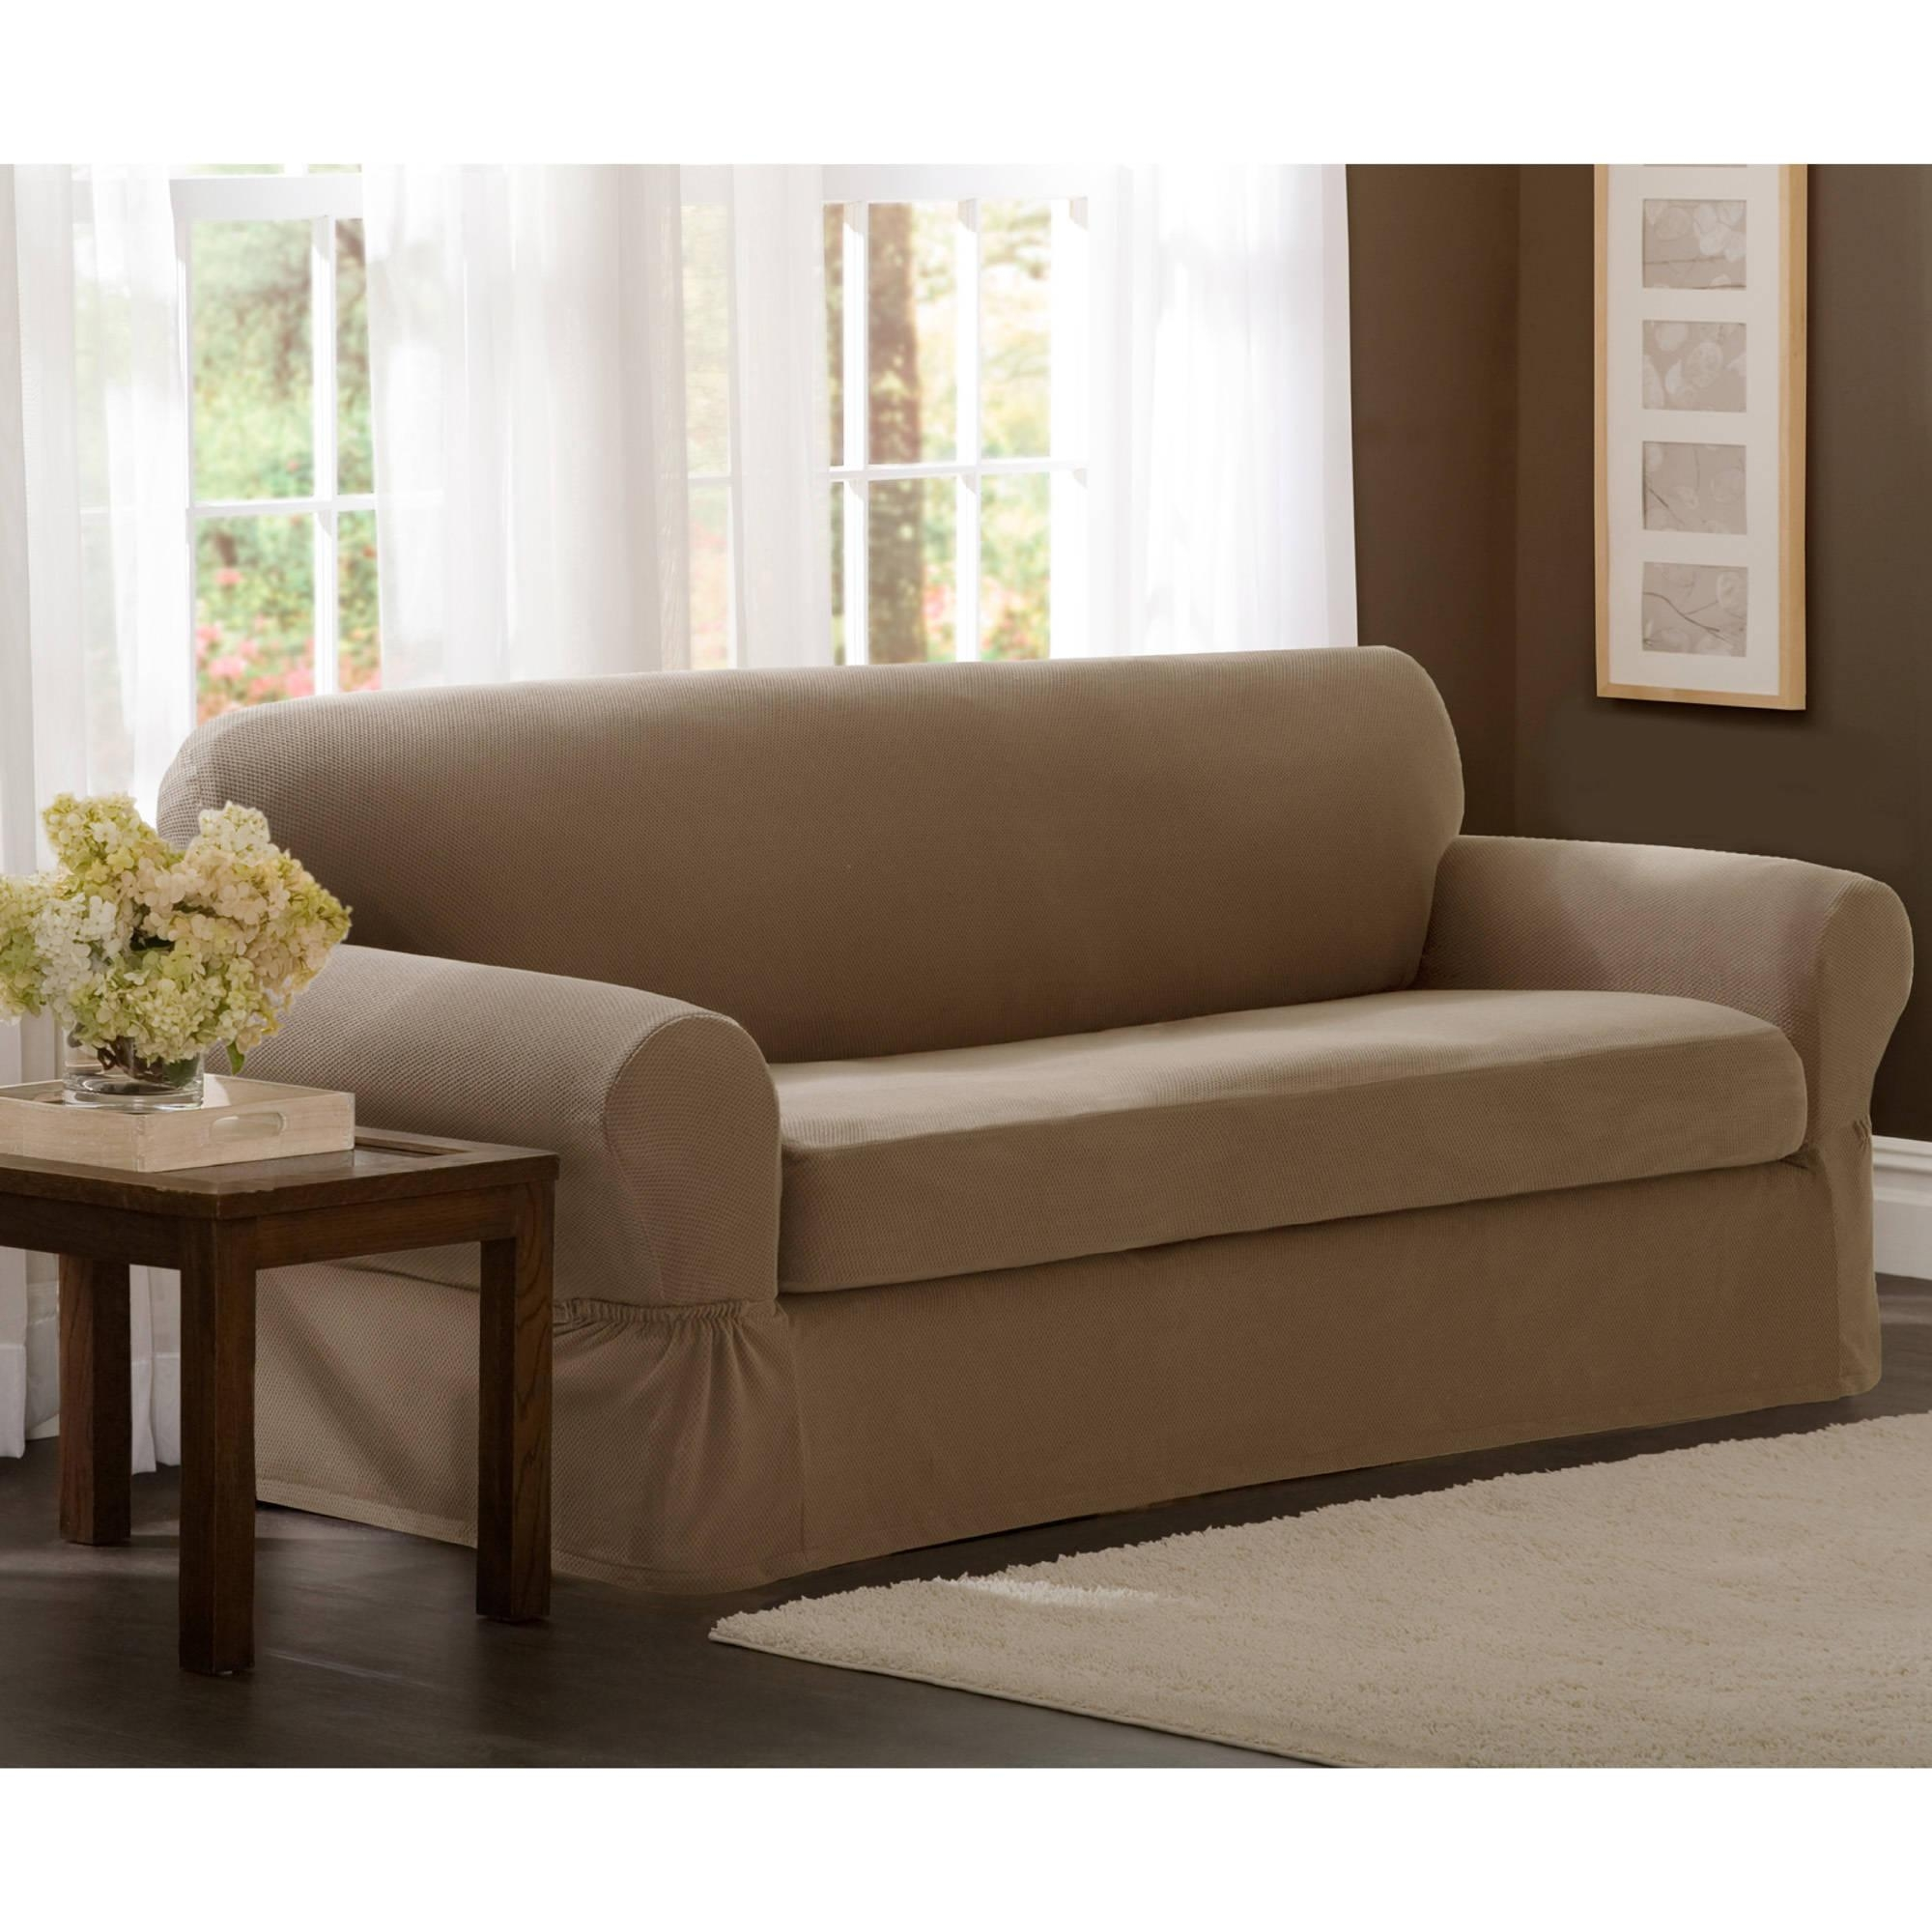 Sofas Center : Double Reclining Sofa Slipcovers Custom Slipcover T In Recliner Sofa Slipcovers (Image 15 of 20)